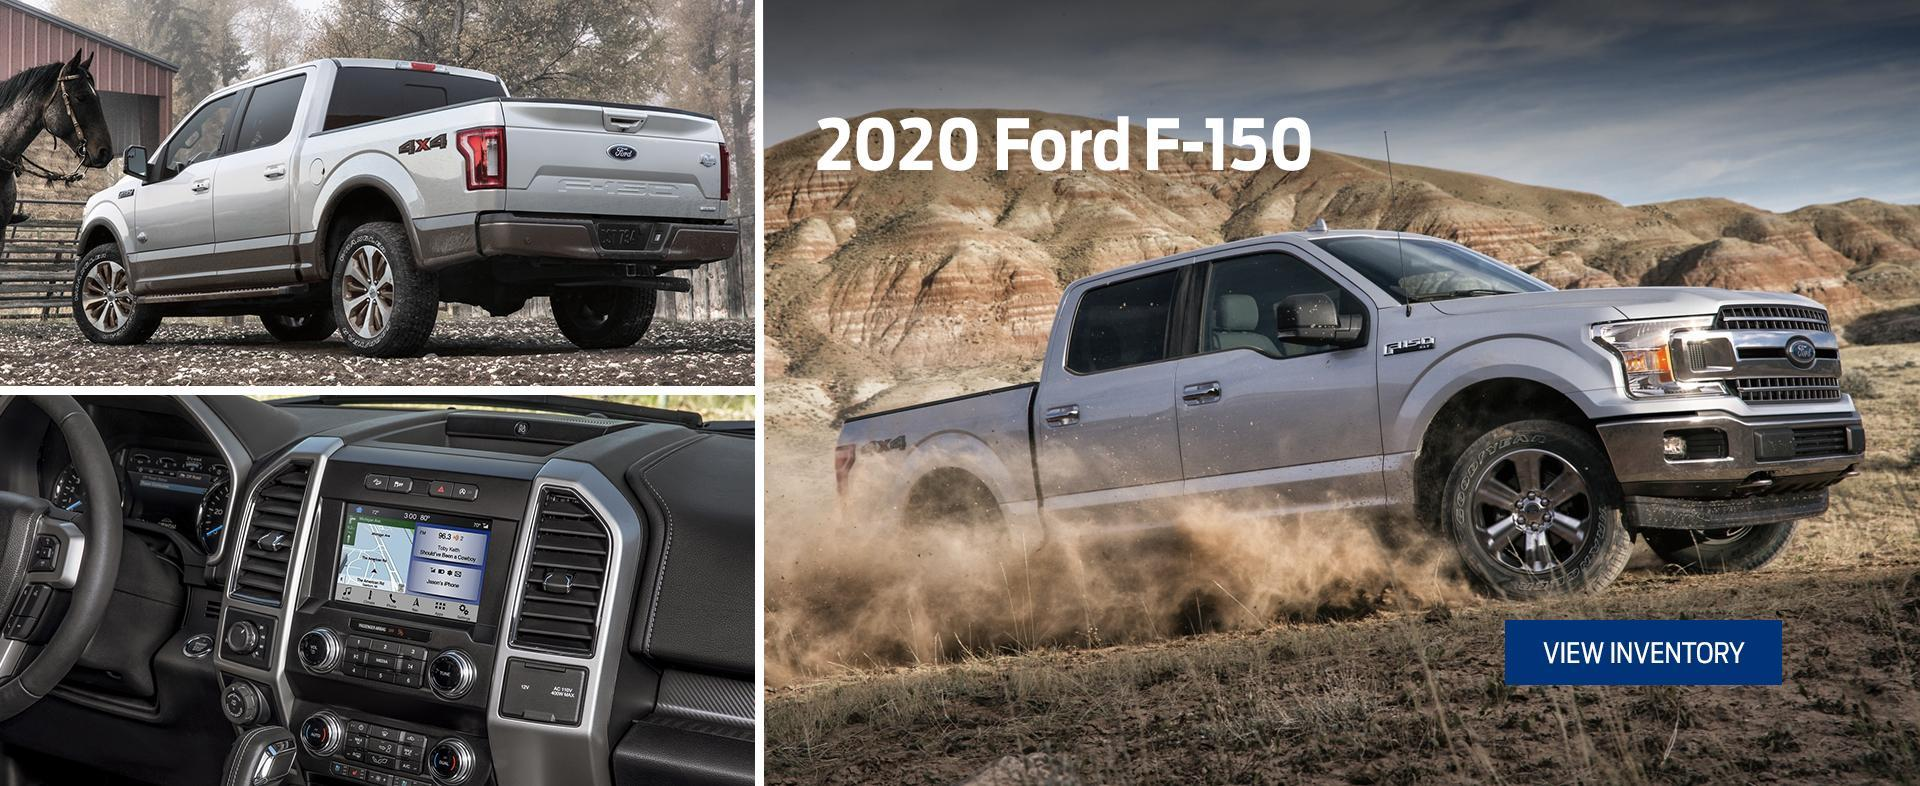 Clarenville Ford F-150